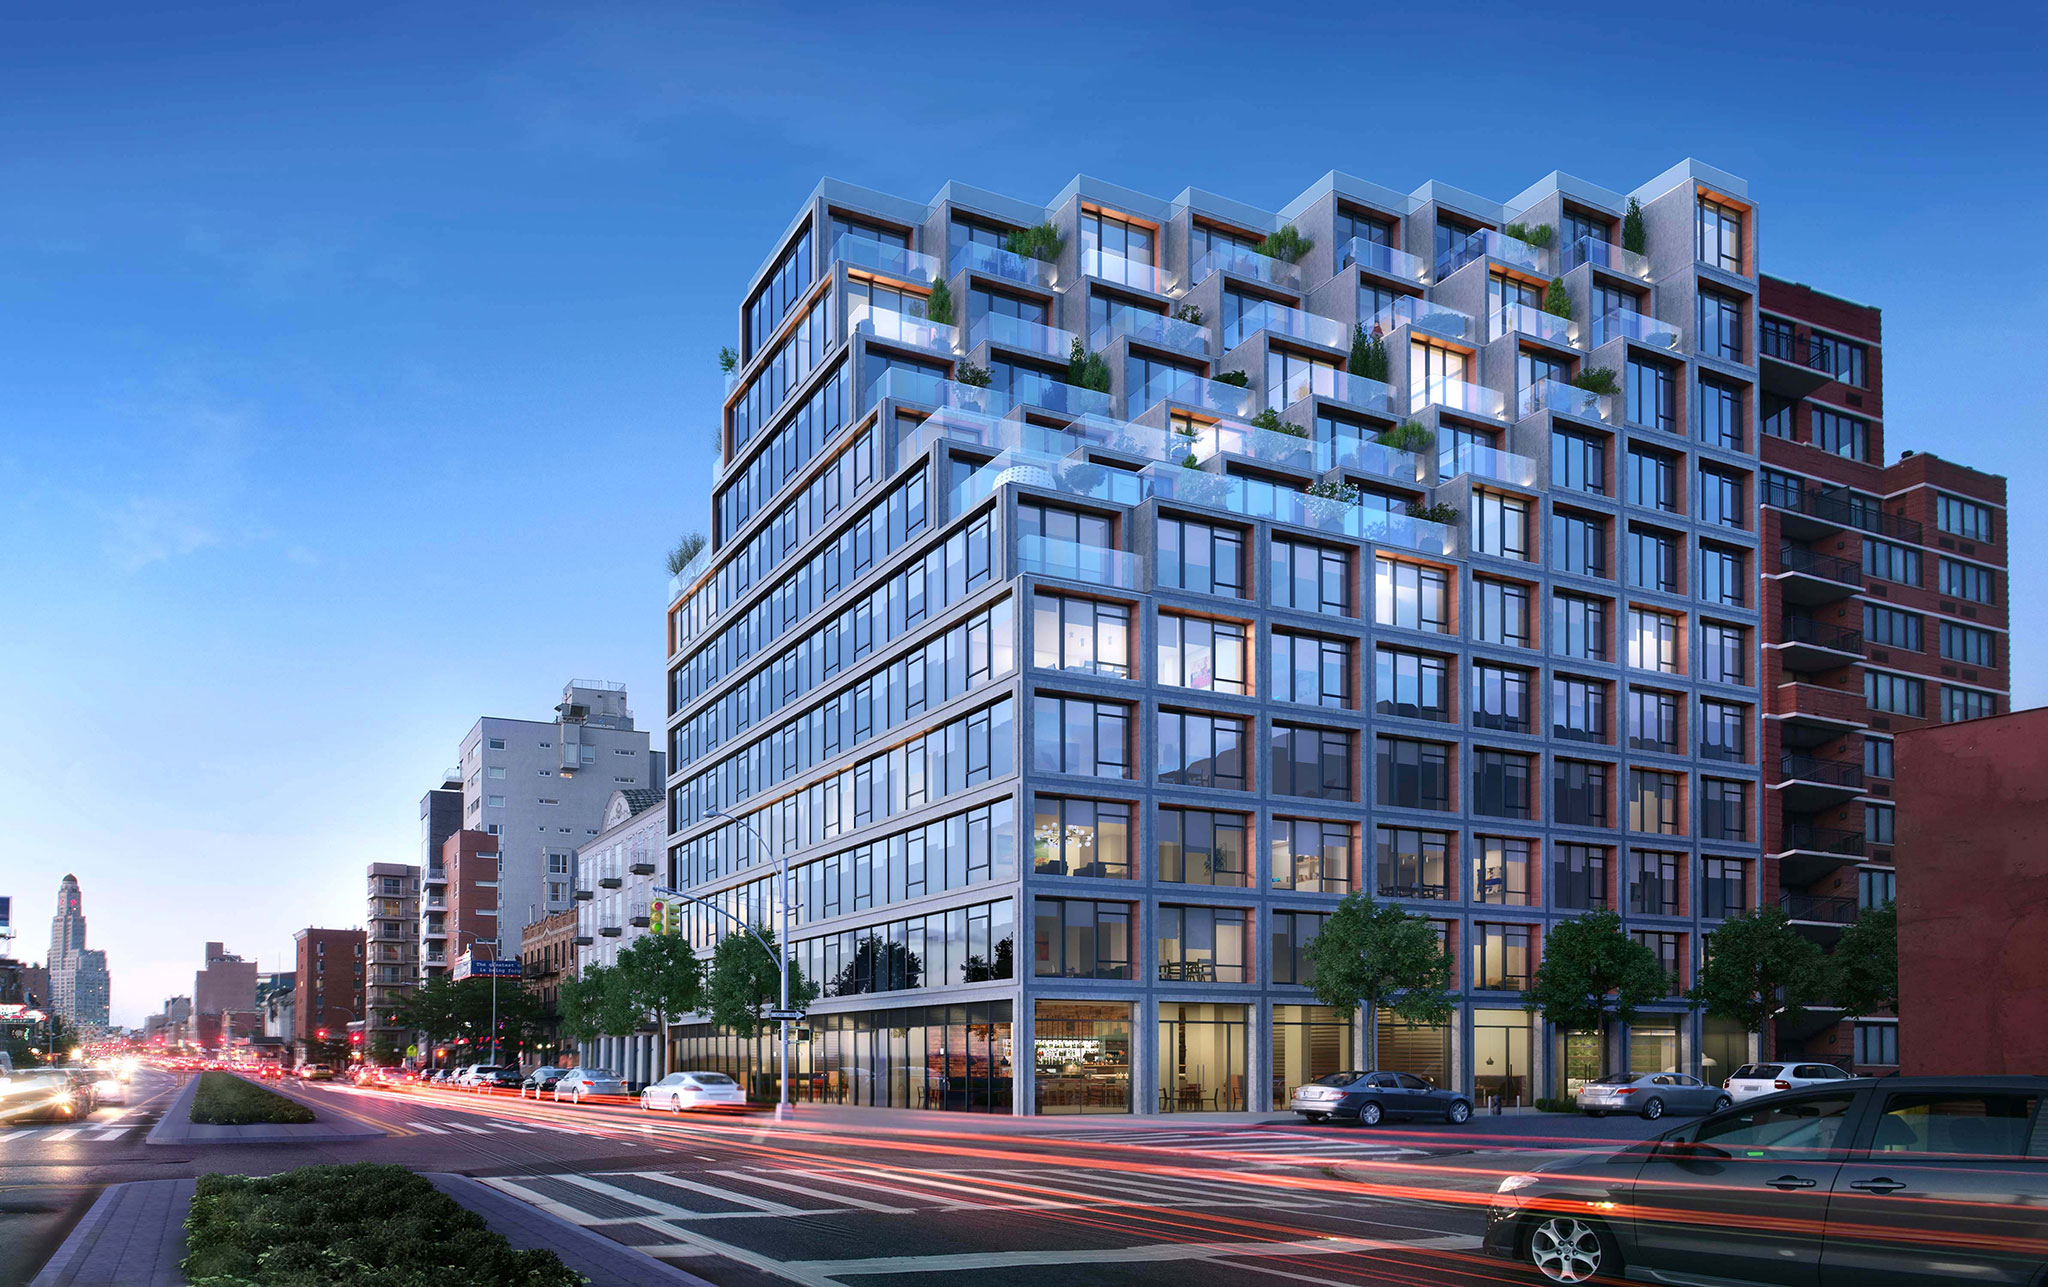 251 1st street by oda new york pixel housing metalocus for New york based architecture firms